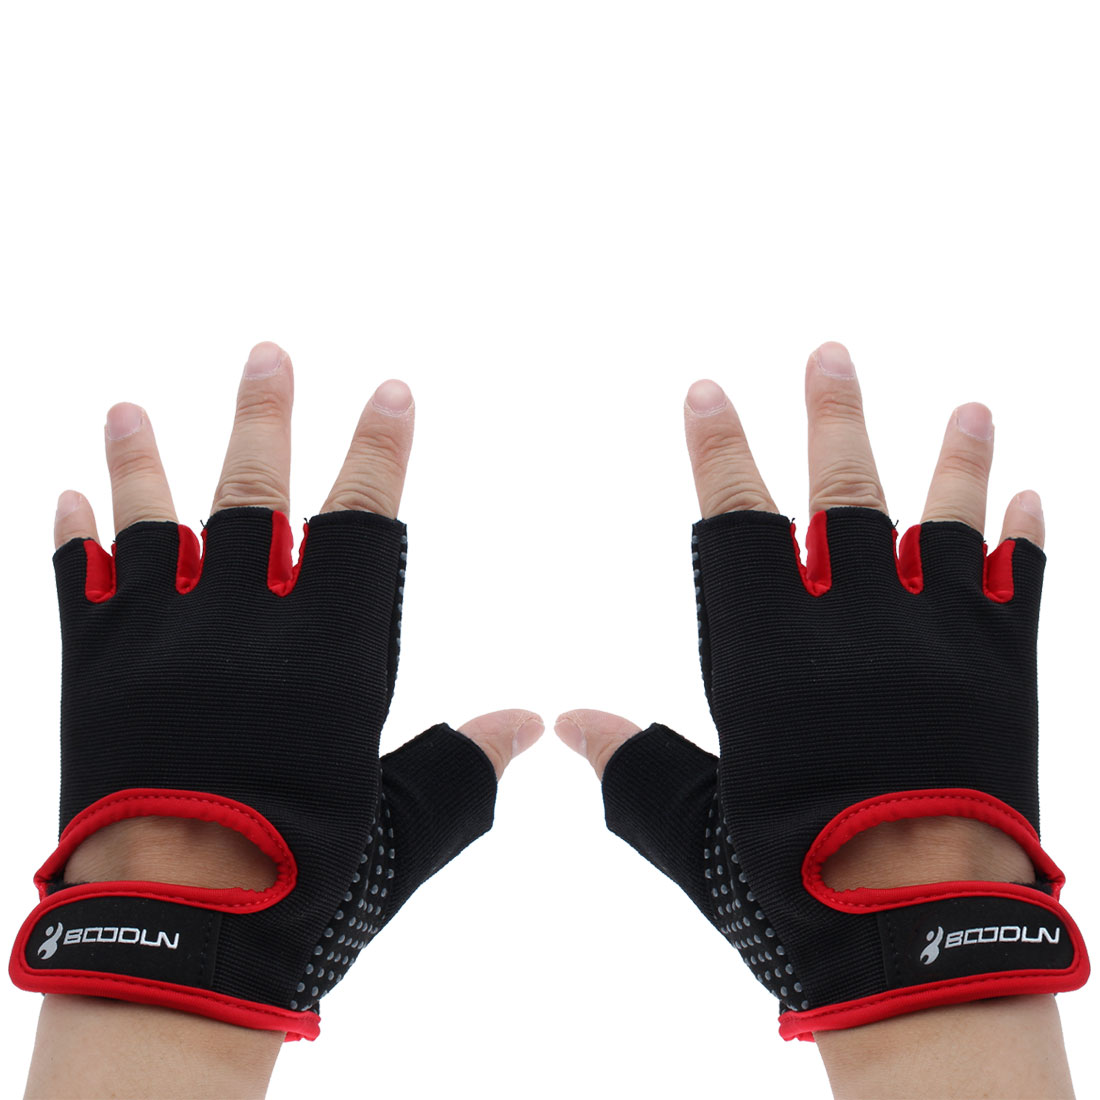 BOODUN Authorized Exercise Weight Biking Lifting Training Microfiber Non-slip Fitness Half Finger Gloves Red S